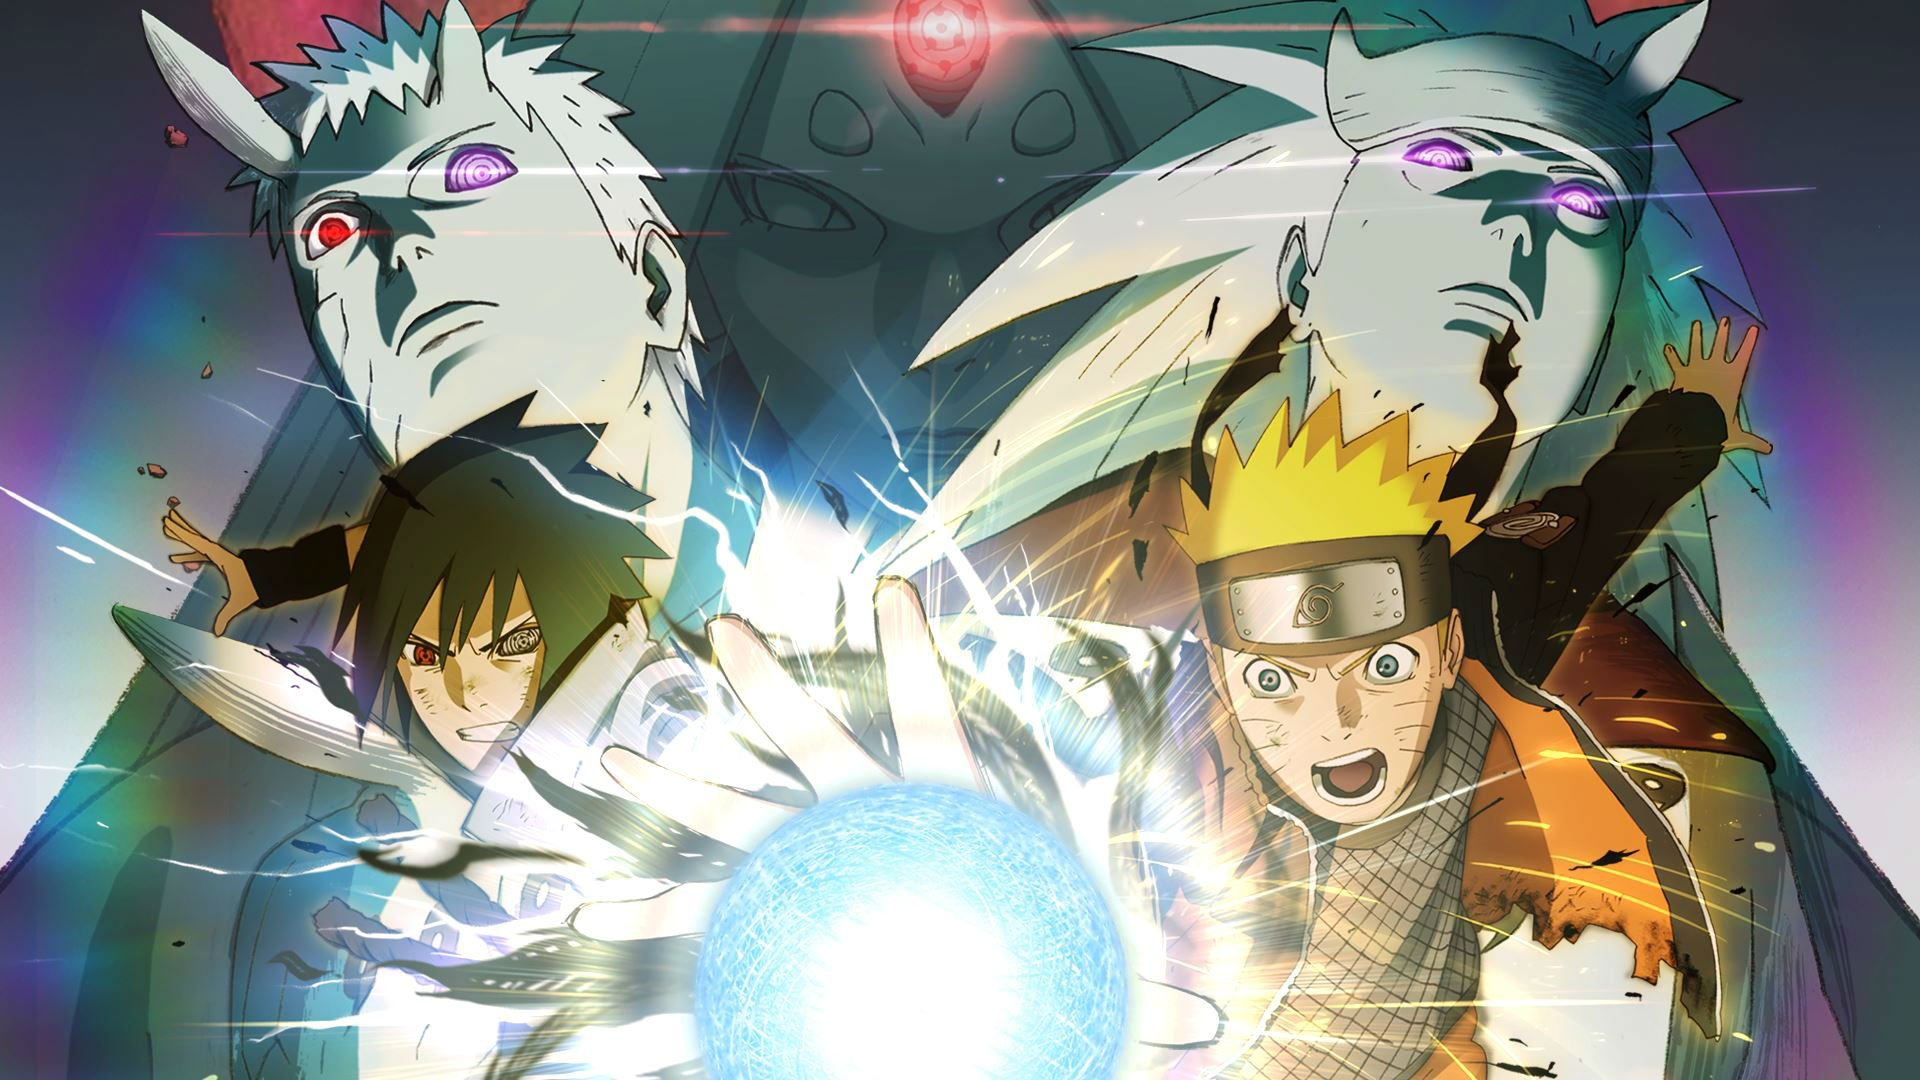 naruto shippuden ultimate ninja storm legacy will be out on playstation 4 and xbox one august 25 itll run you 7999 usd - Naruto 69